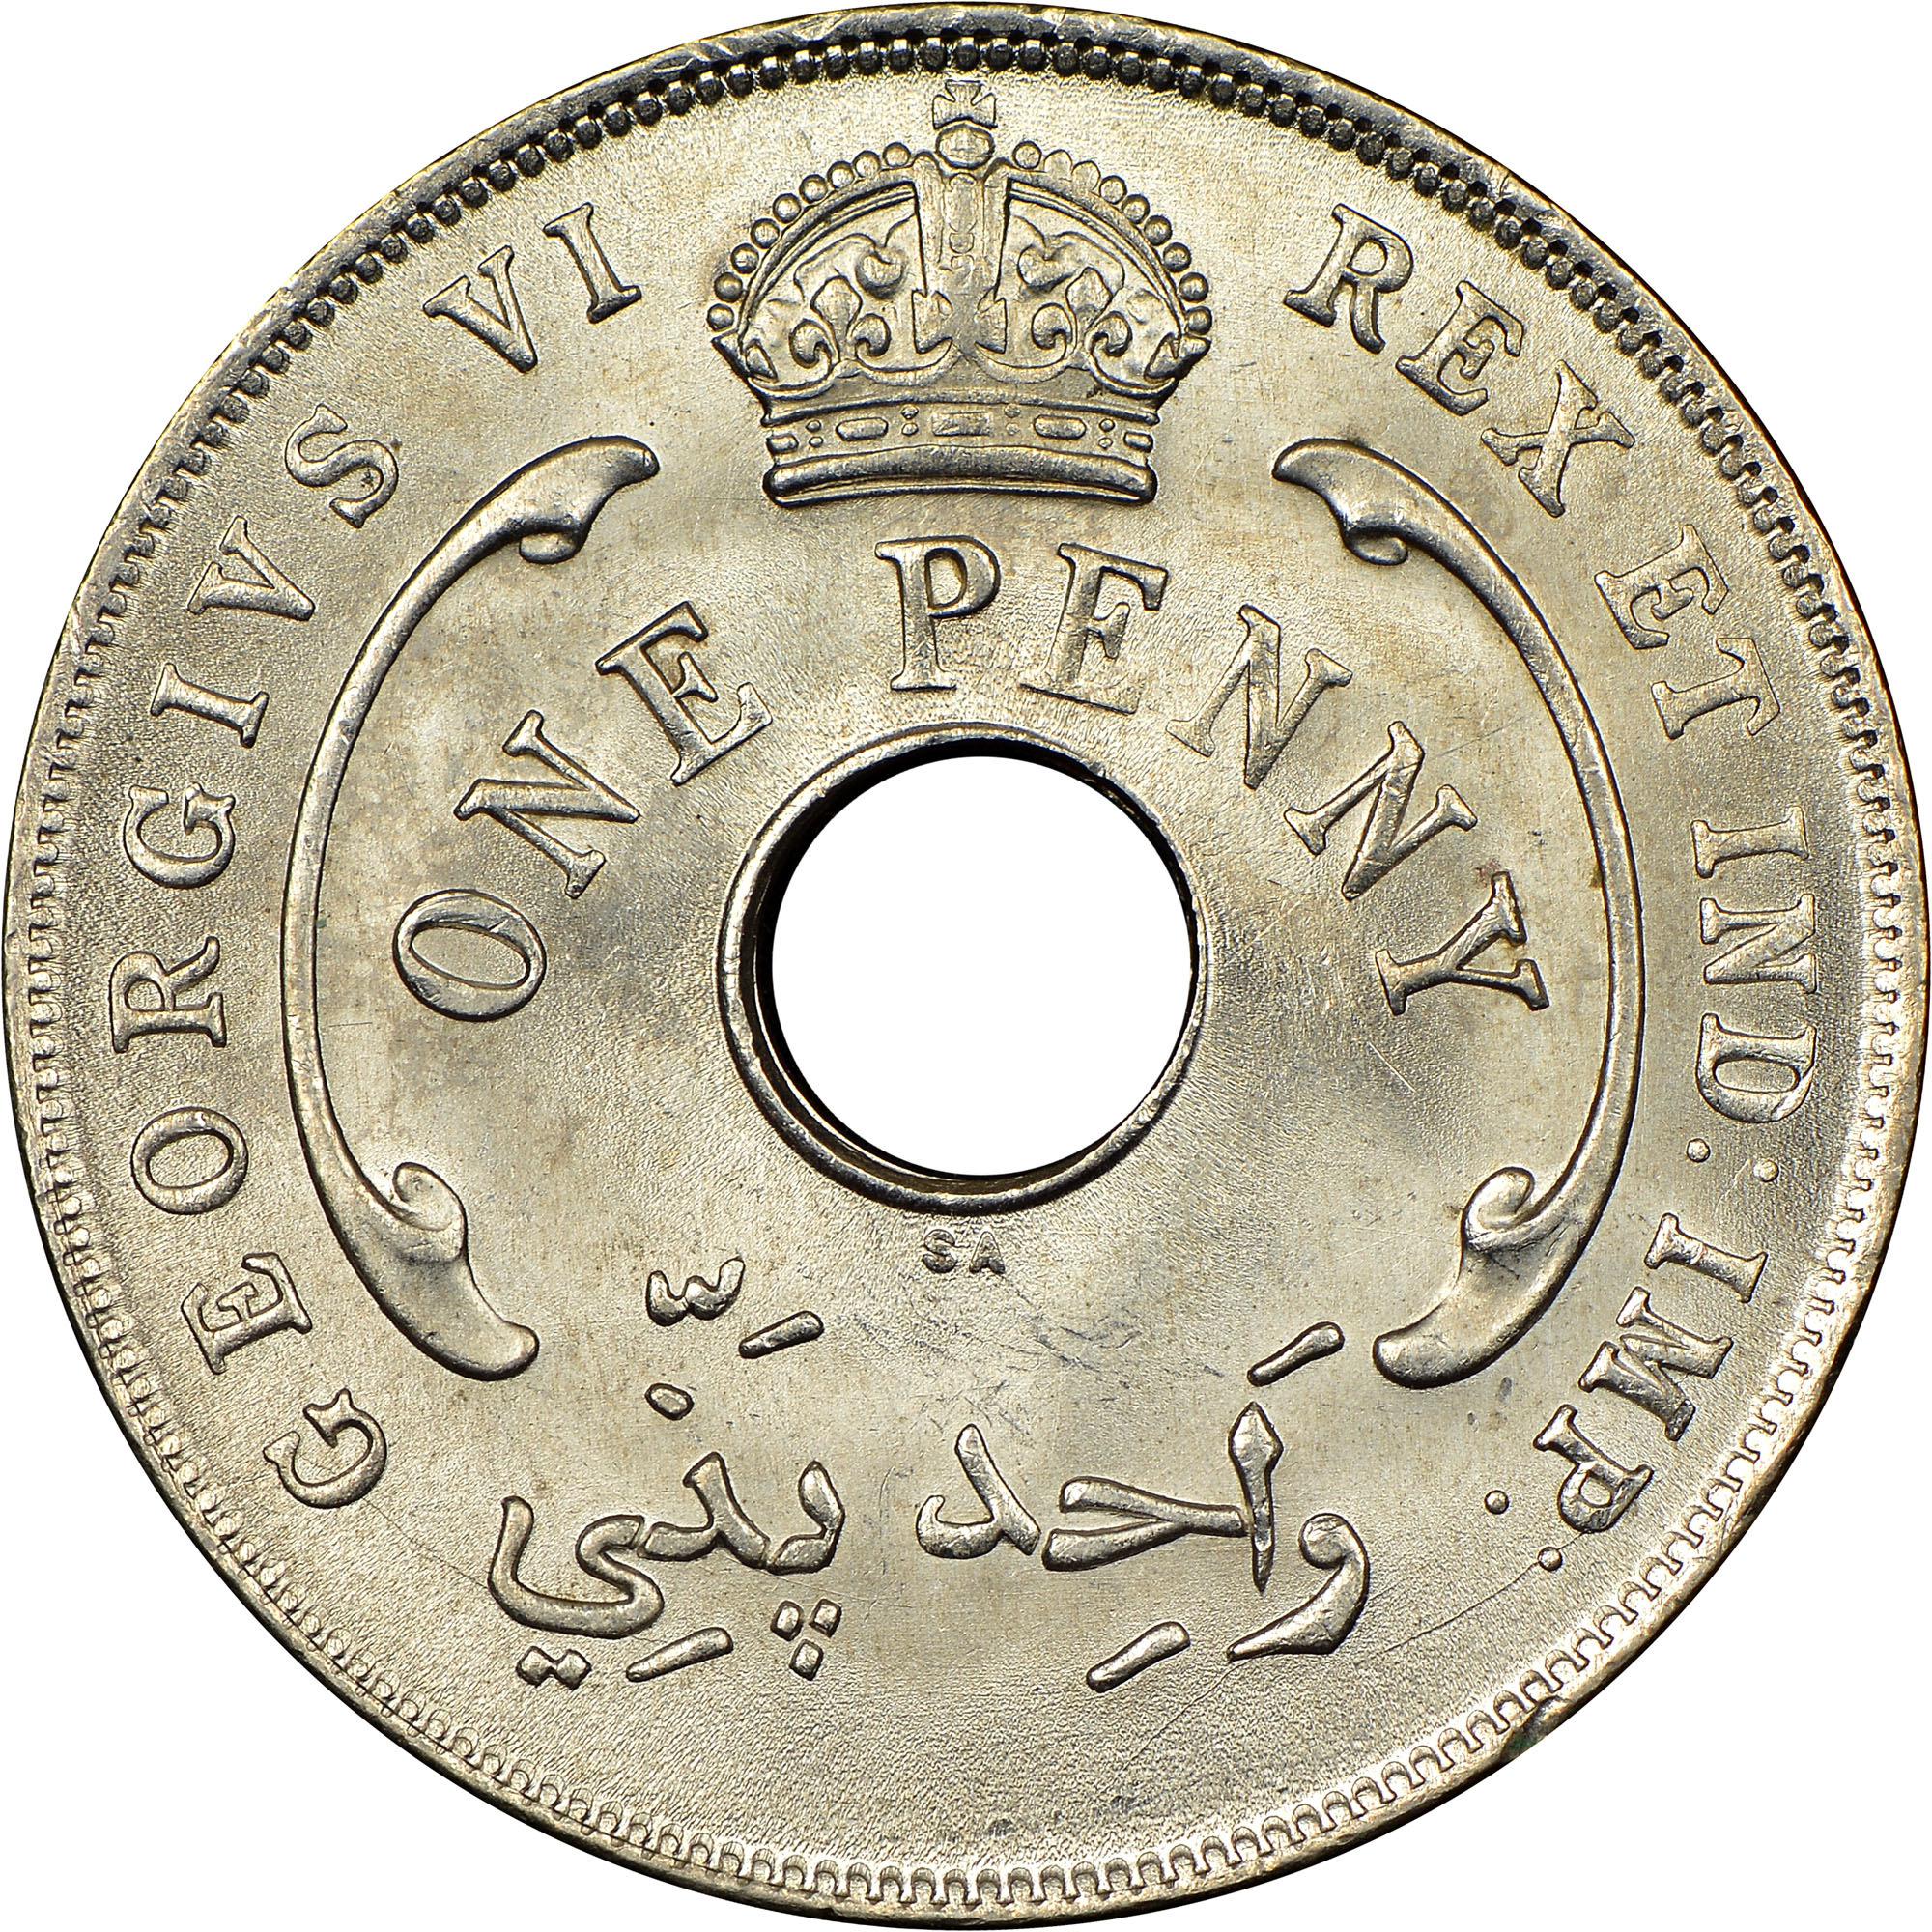 1937-1947 British West Africa Penny obverse